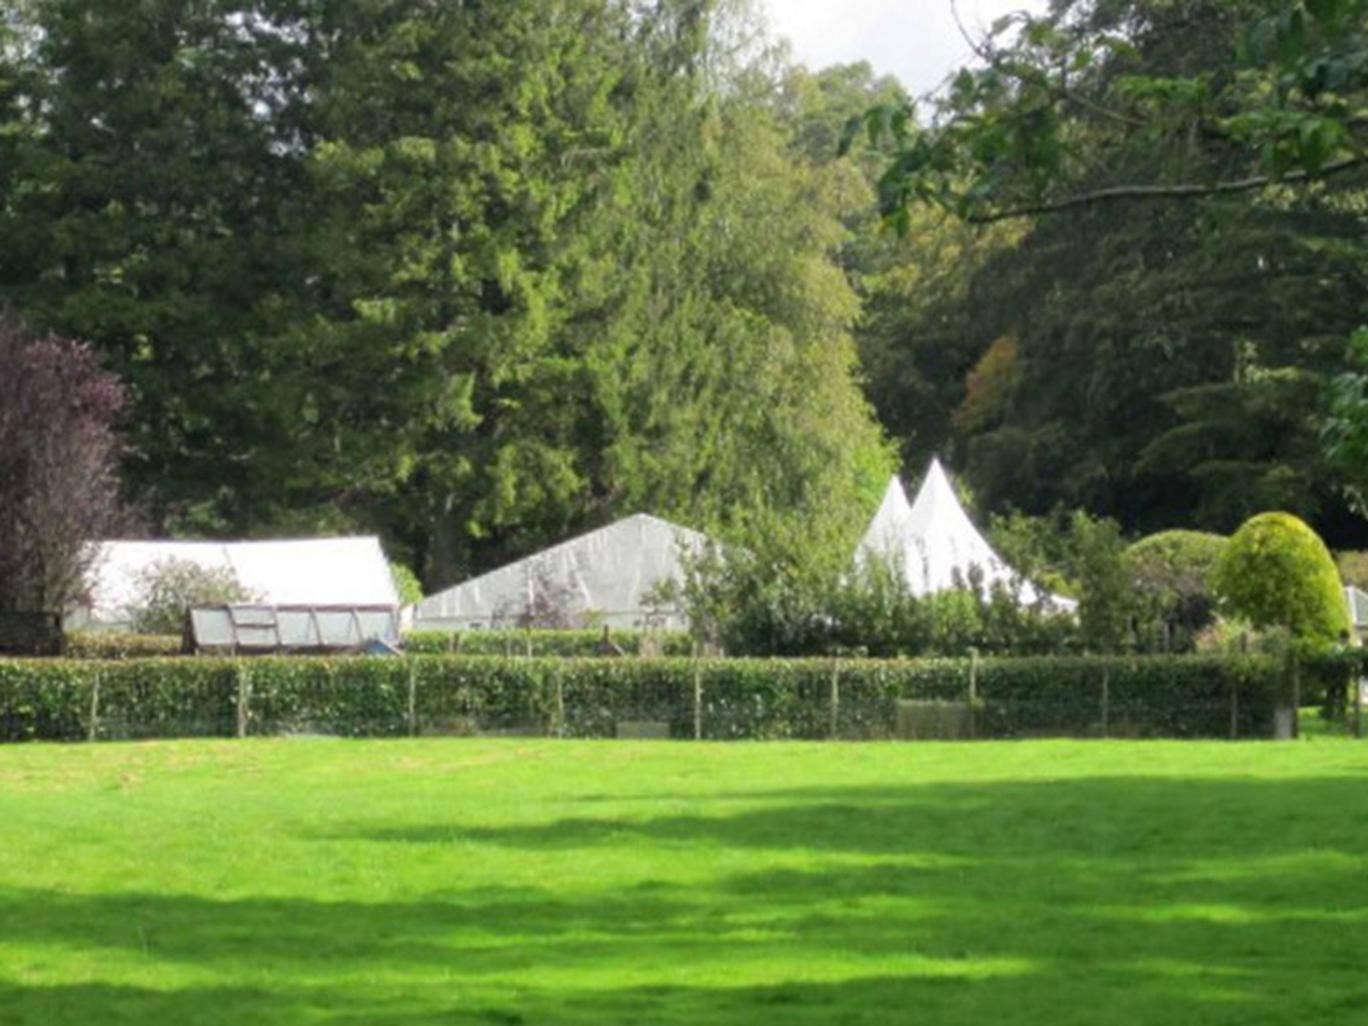 The marquee of the wedding celebration on the grounds of Larch Cottage in Ecclerigg, where the incident occurred